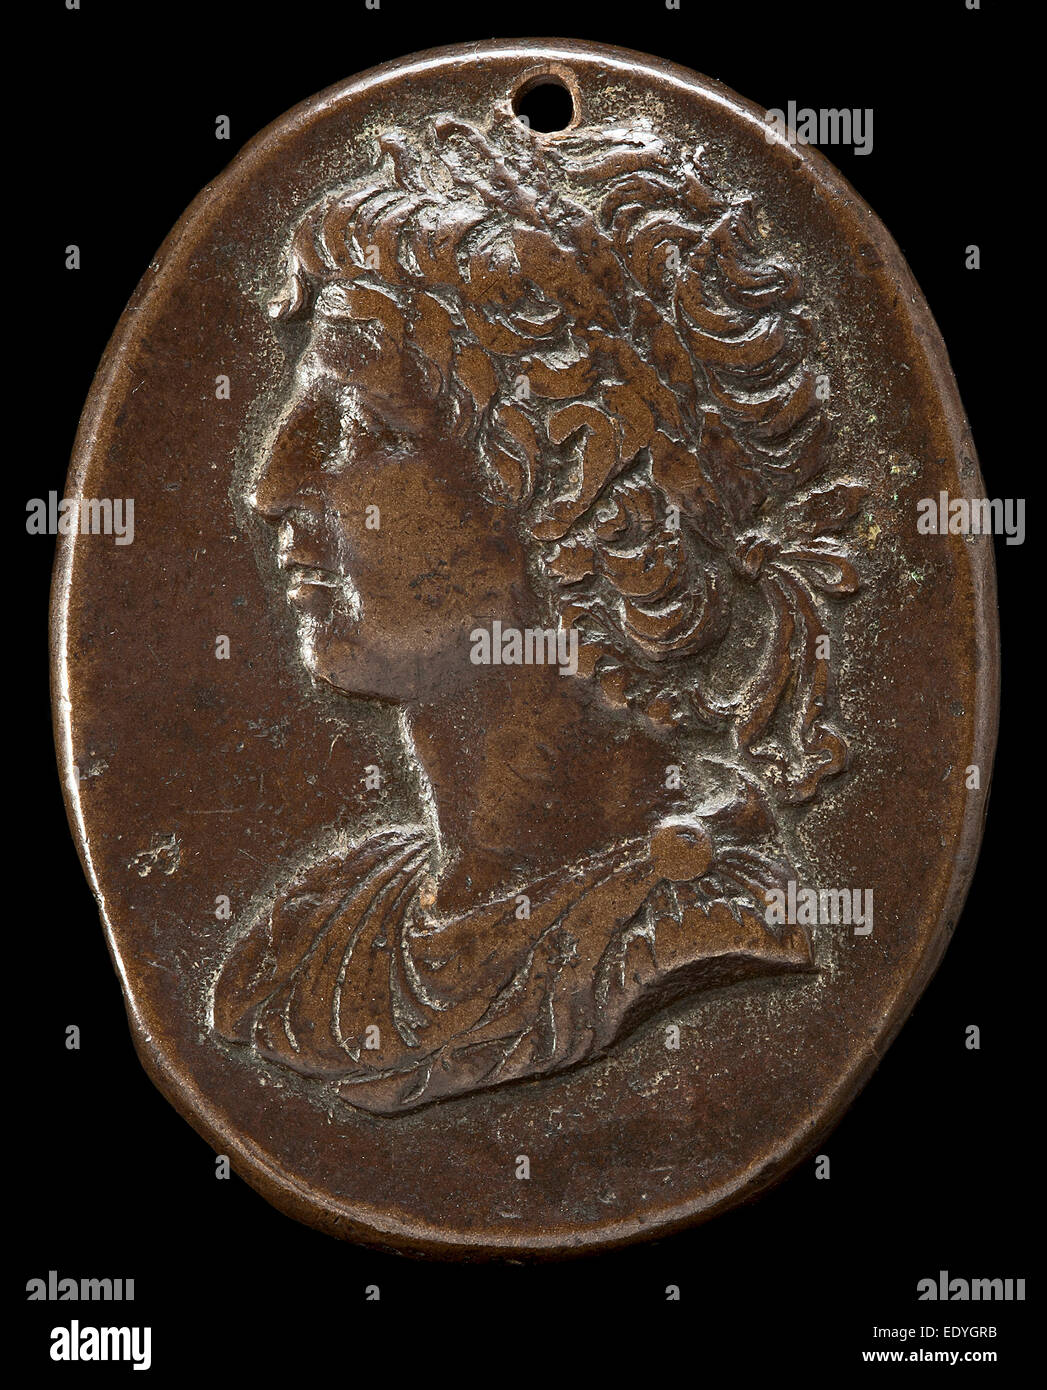 Italian 15th or 16th Century, after the Antique, A Roman Emperor, 15th or 16th century, bronze; Medium brown patina - Stock Image